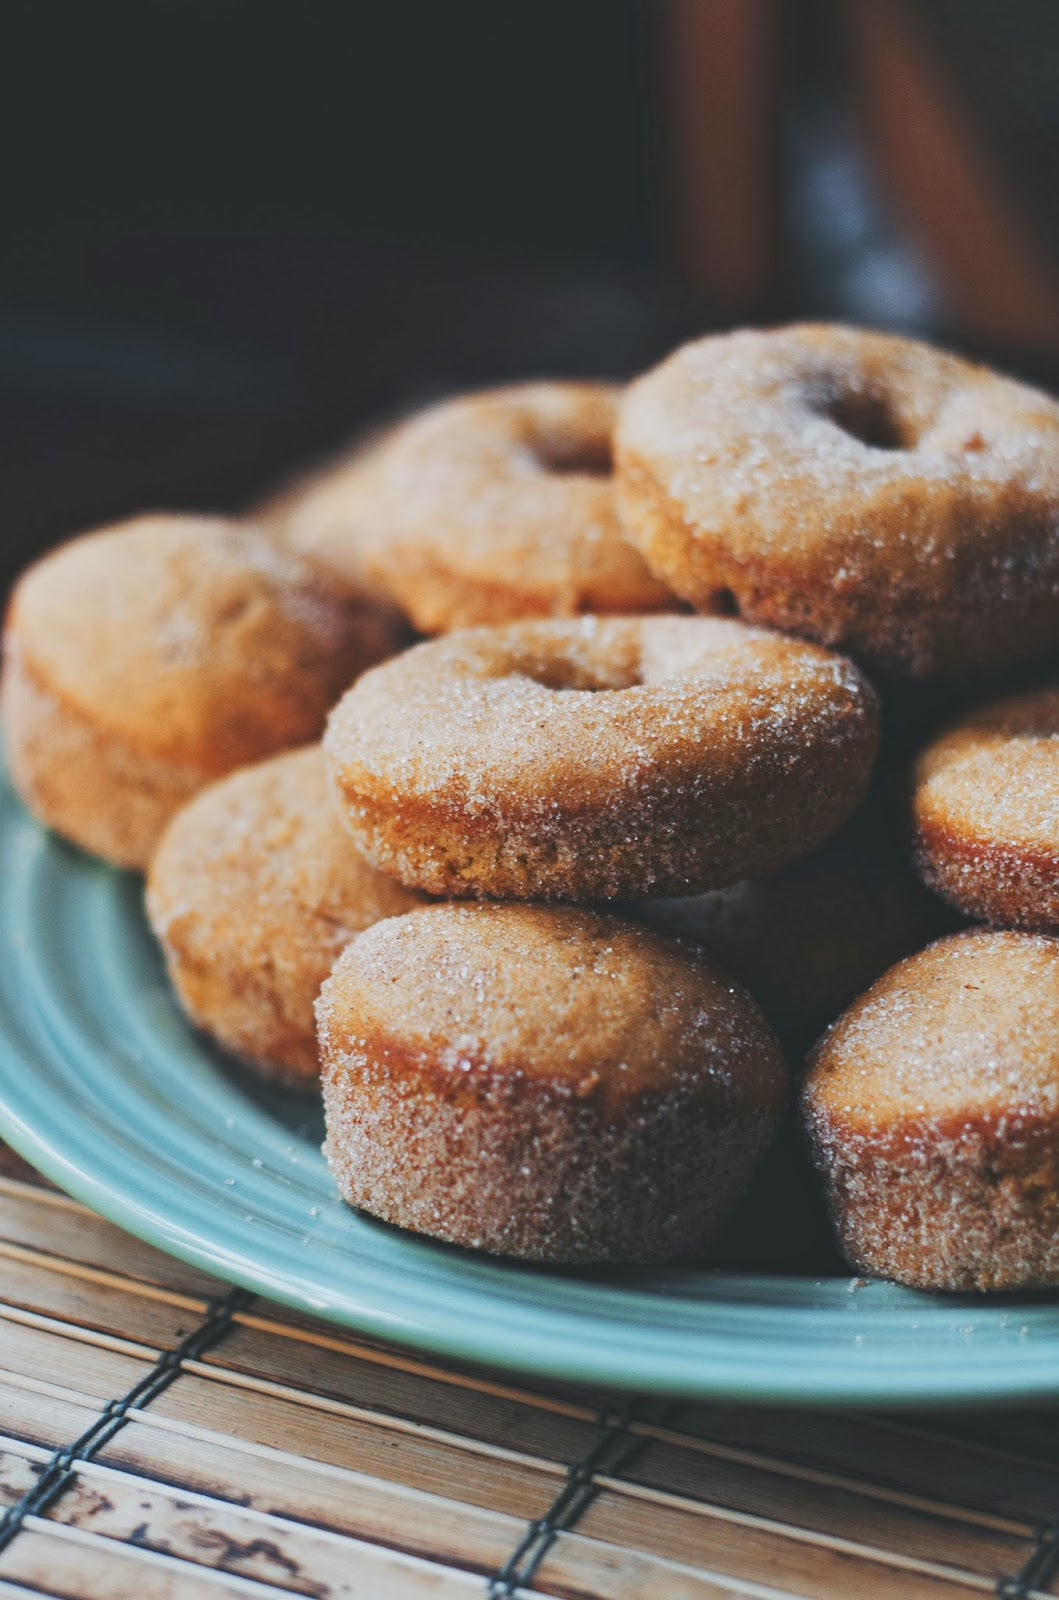 The Ginger Cook: Cinnamon Sugar Pumpkin Doughnuts and Muffins